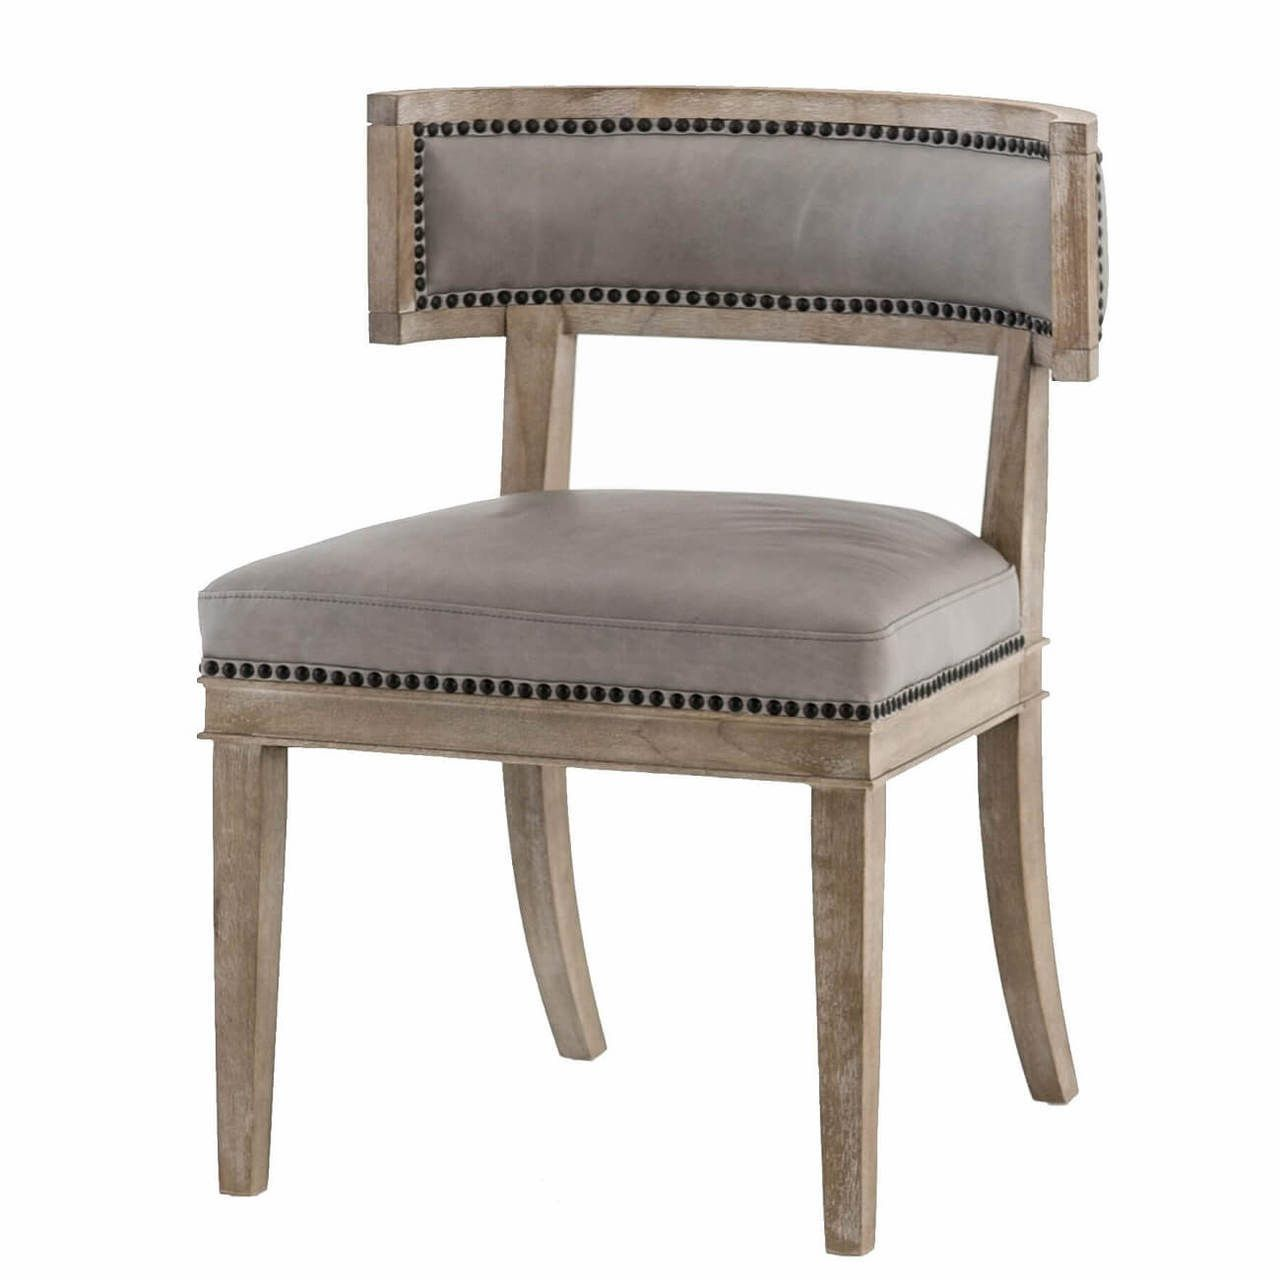 carter curved grey leather dining chair. carter curved grey leather dining chair  dining chairs modern